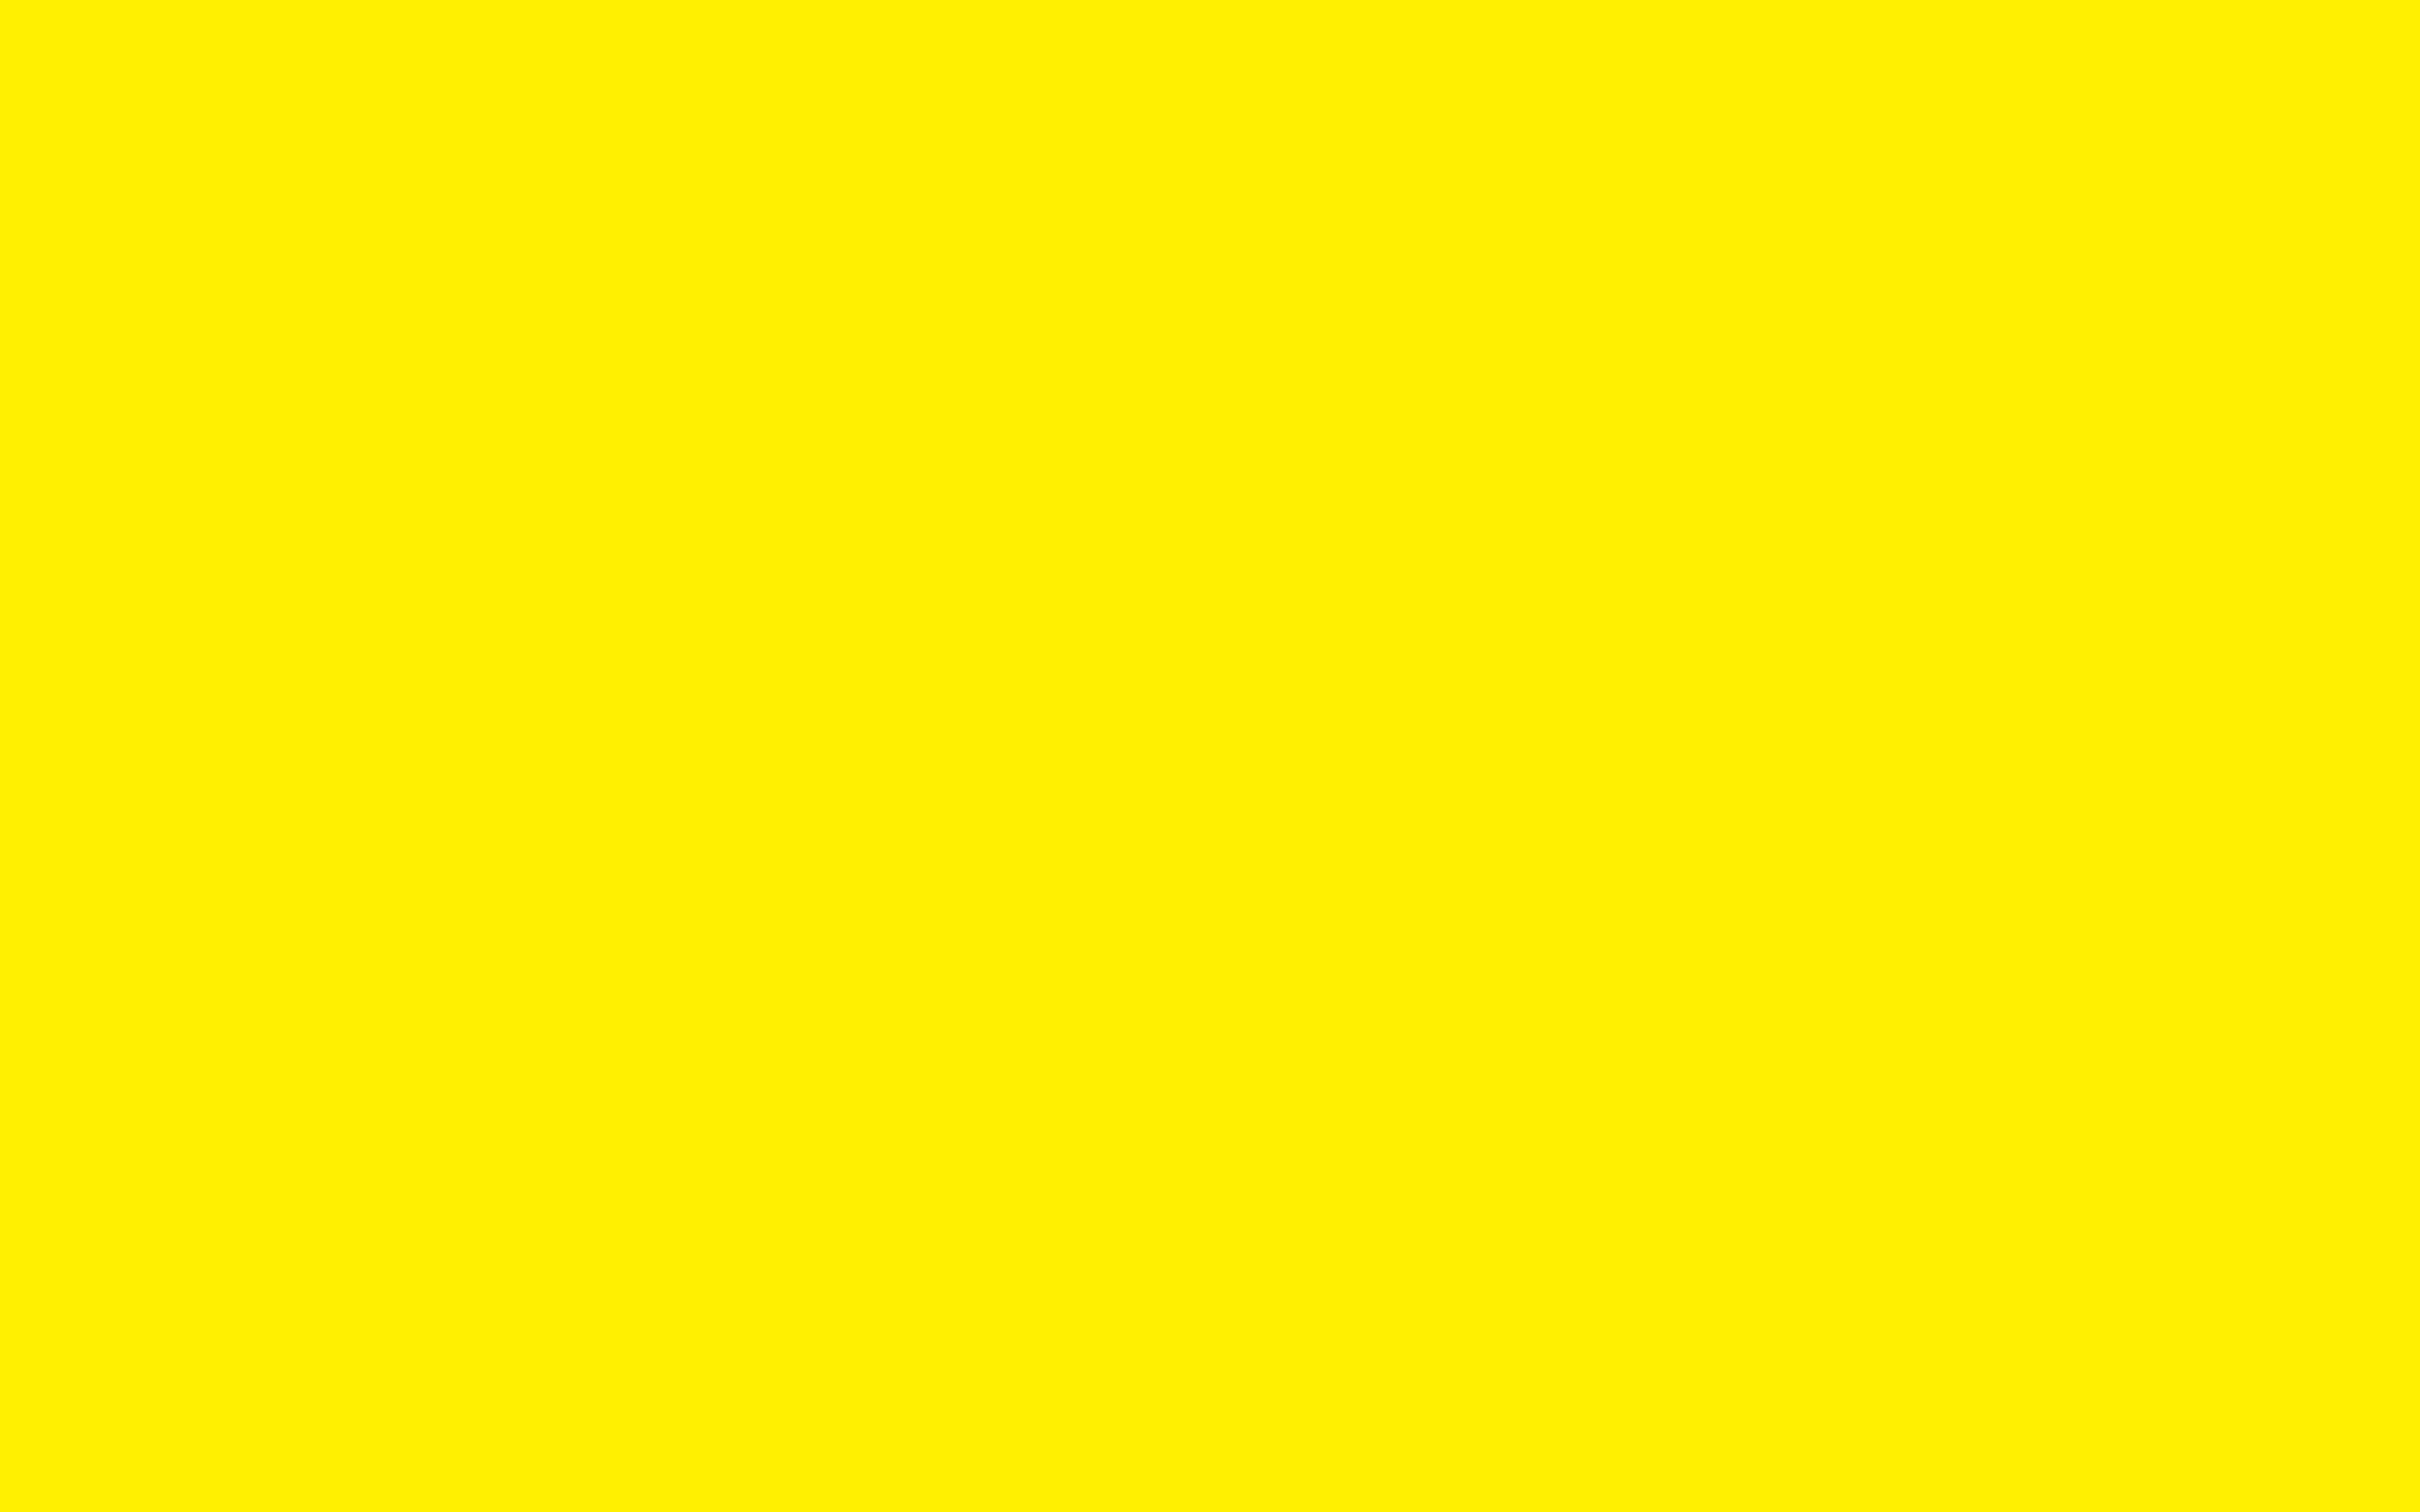 2560x1600 Canary Yellow Solid Color Background